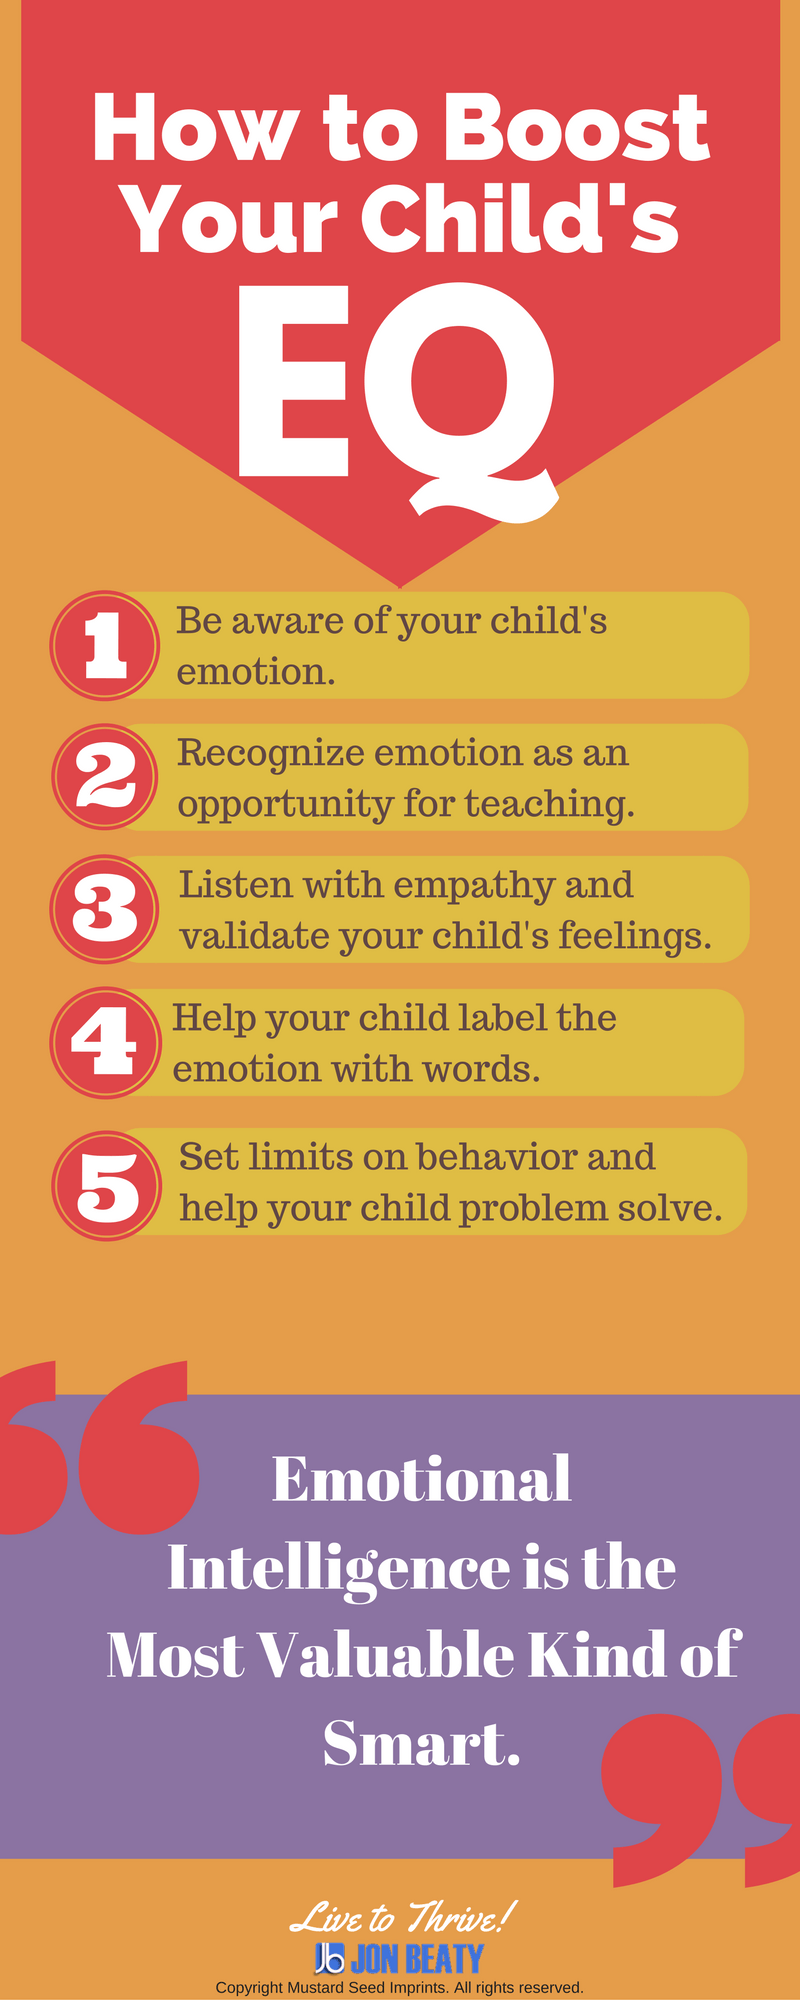 How to Boost Your Child's Emotional Intelligence